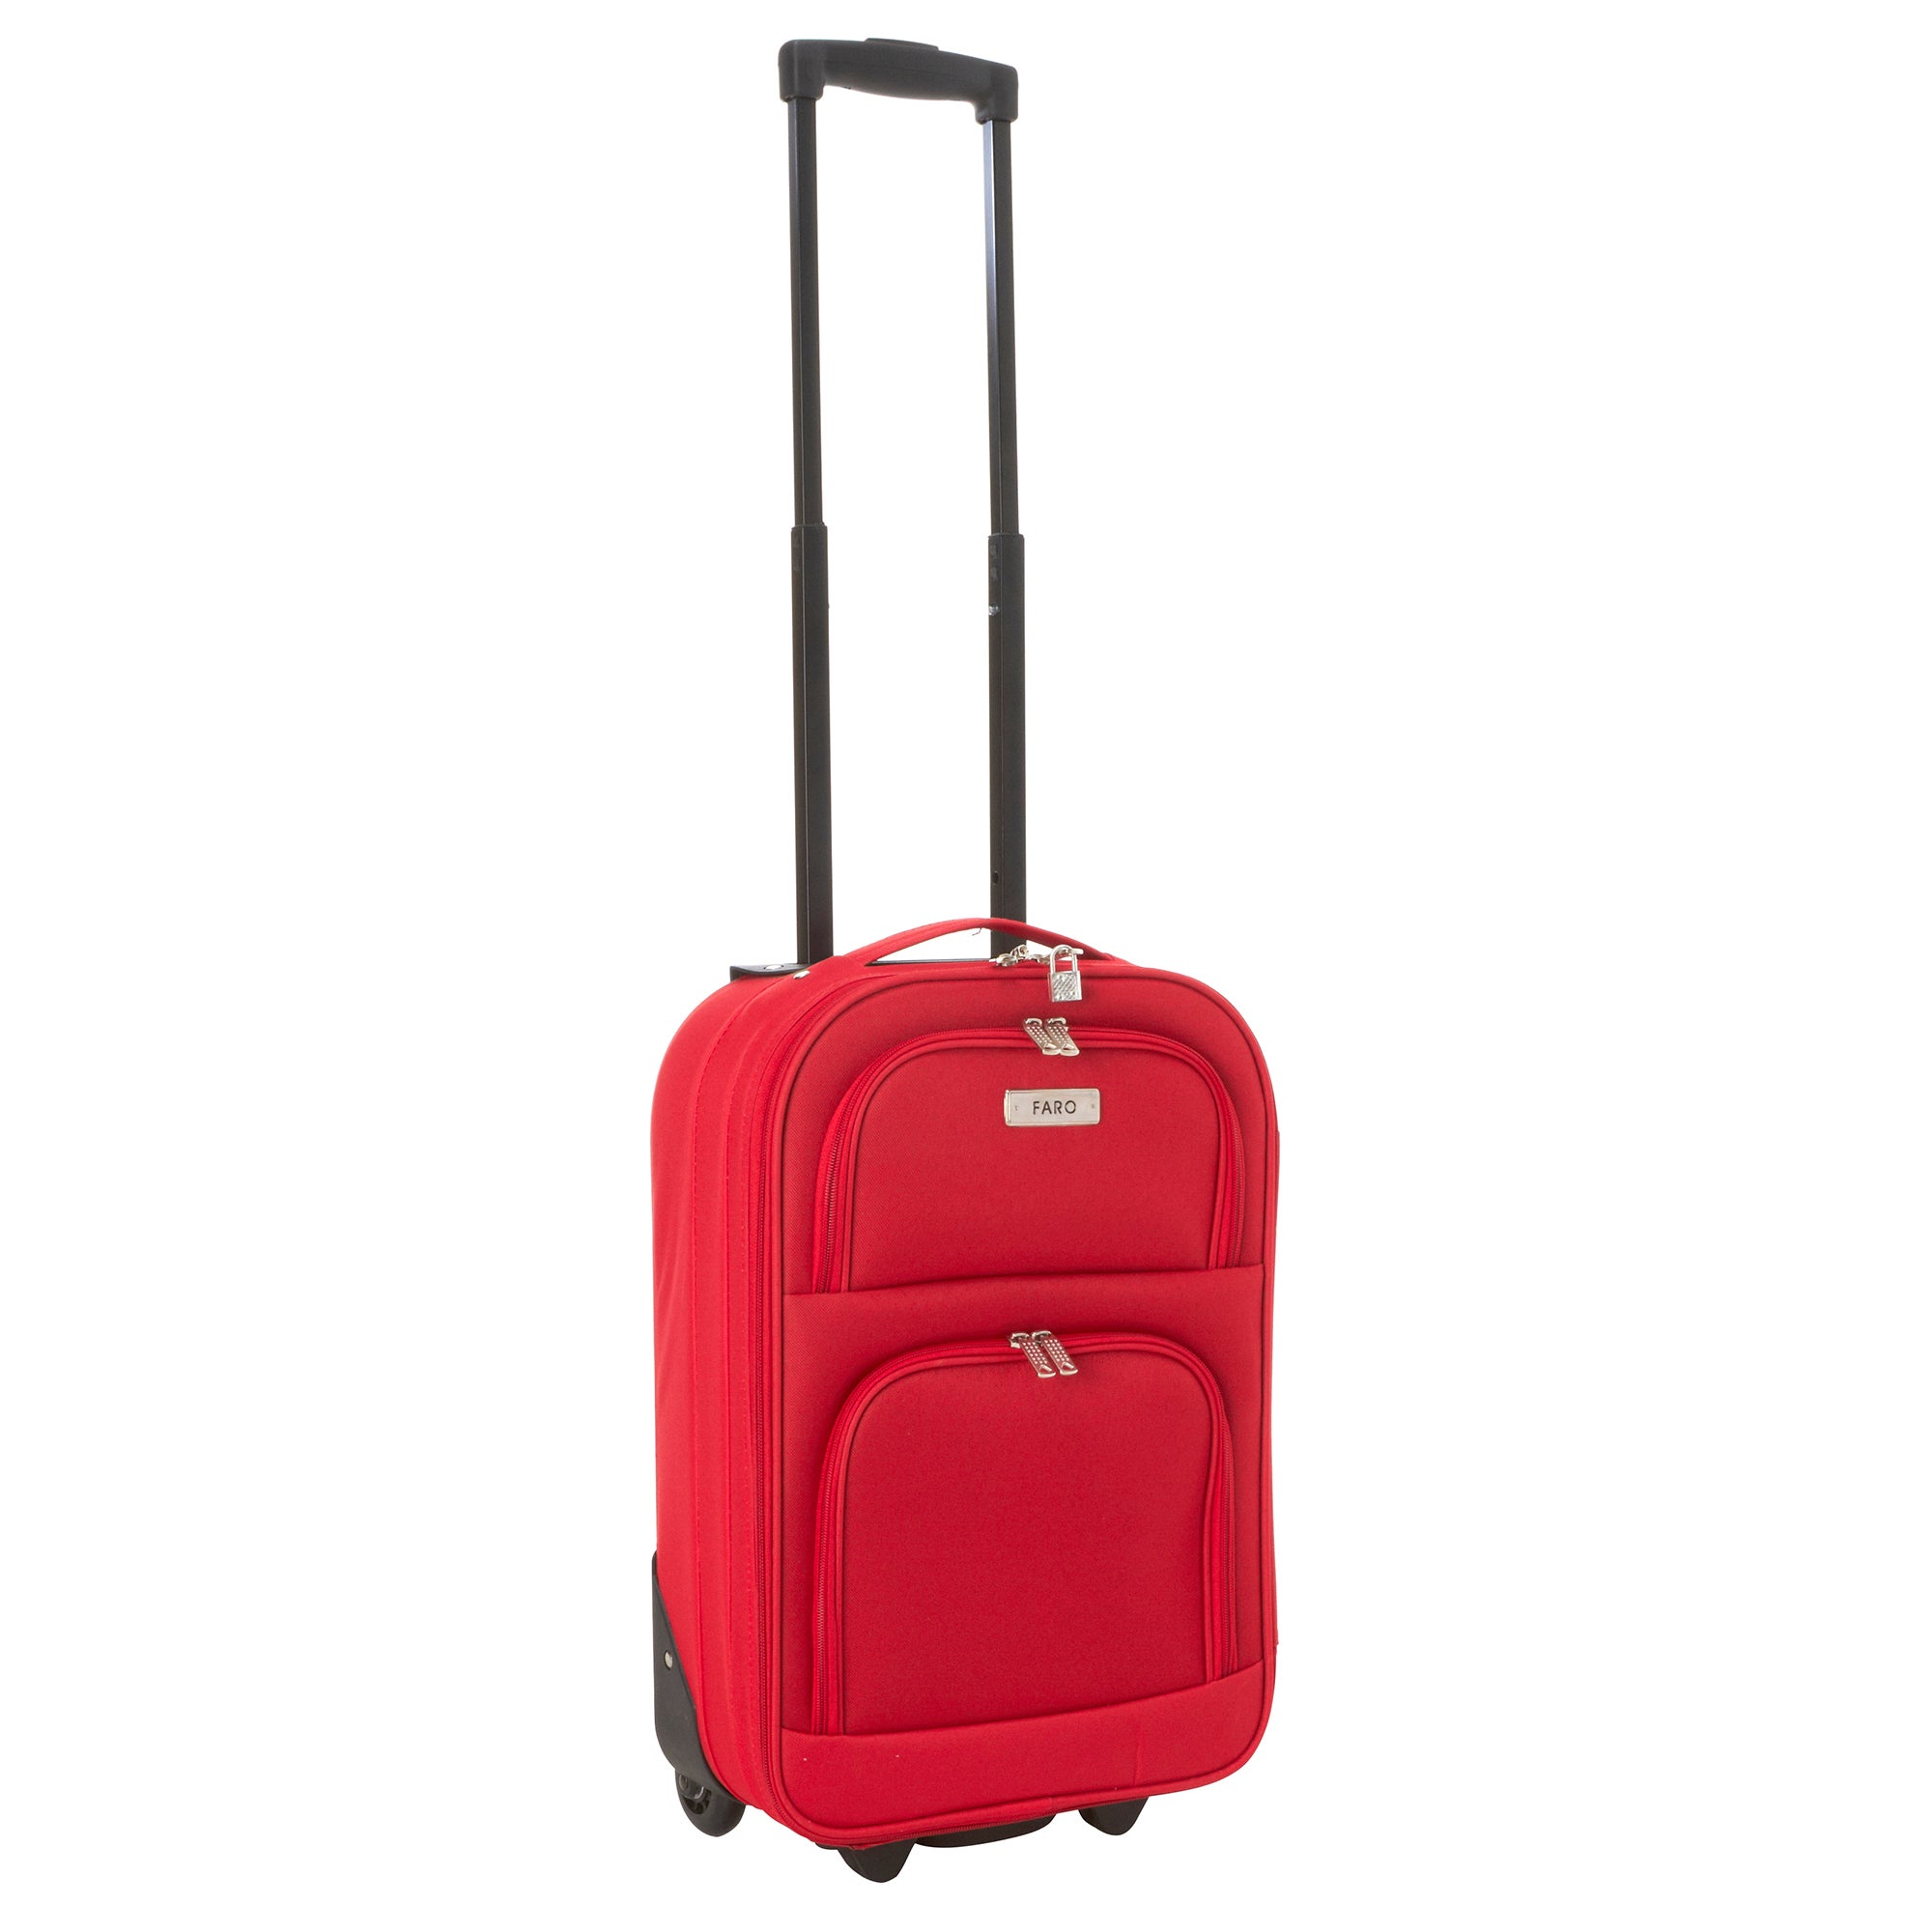 Faro Red 28 Inch Large Family Luggage Case